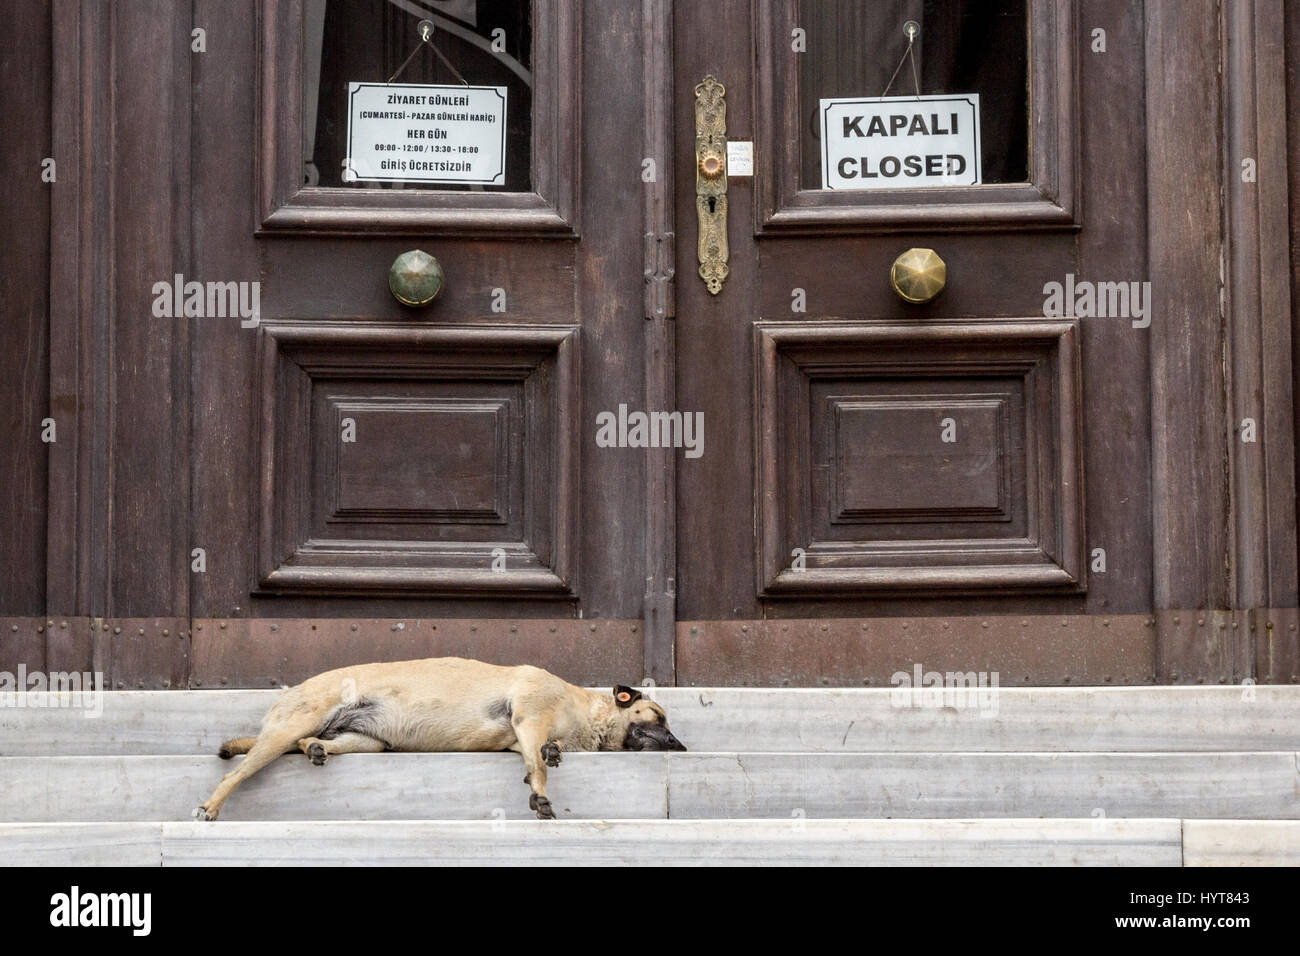 Dog sleeping in front of a closed administration in Istanbul, Turkey  Picture of a dog sleeping in front of a closed - Stock Image